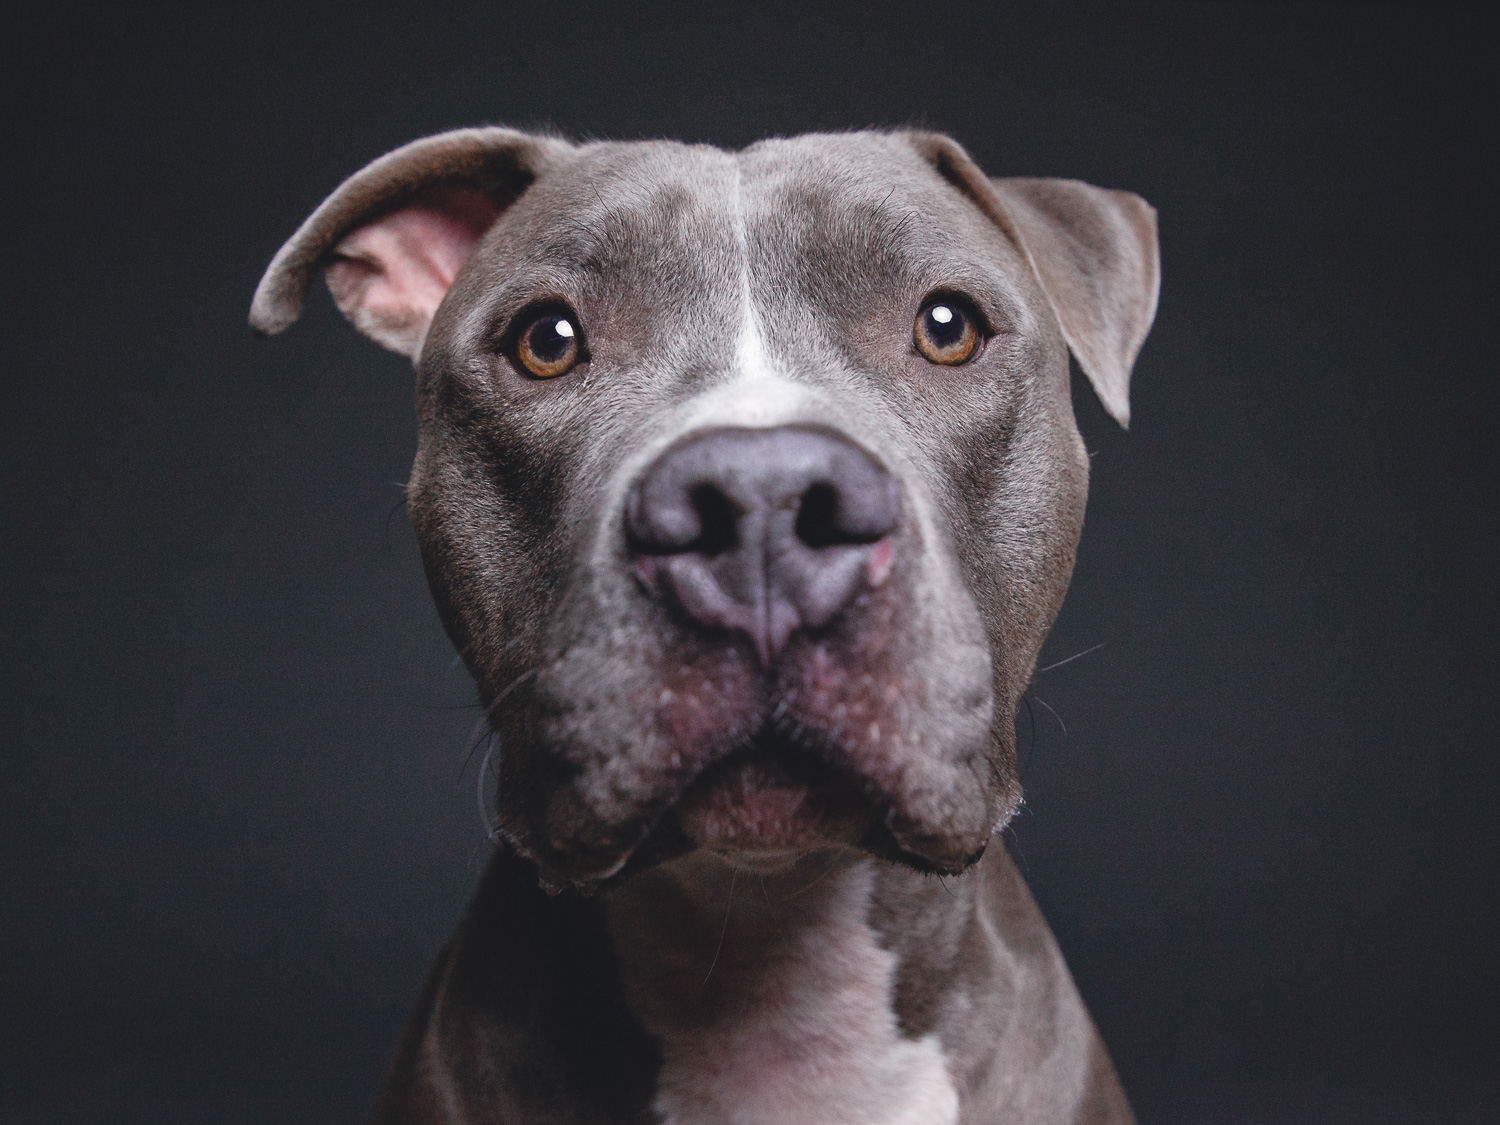 Adoptable Pit Bull in Chicago